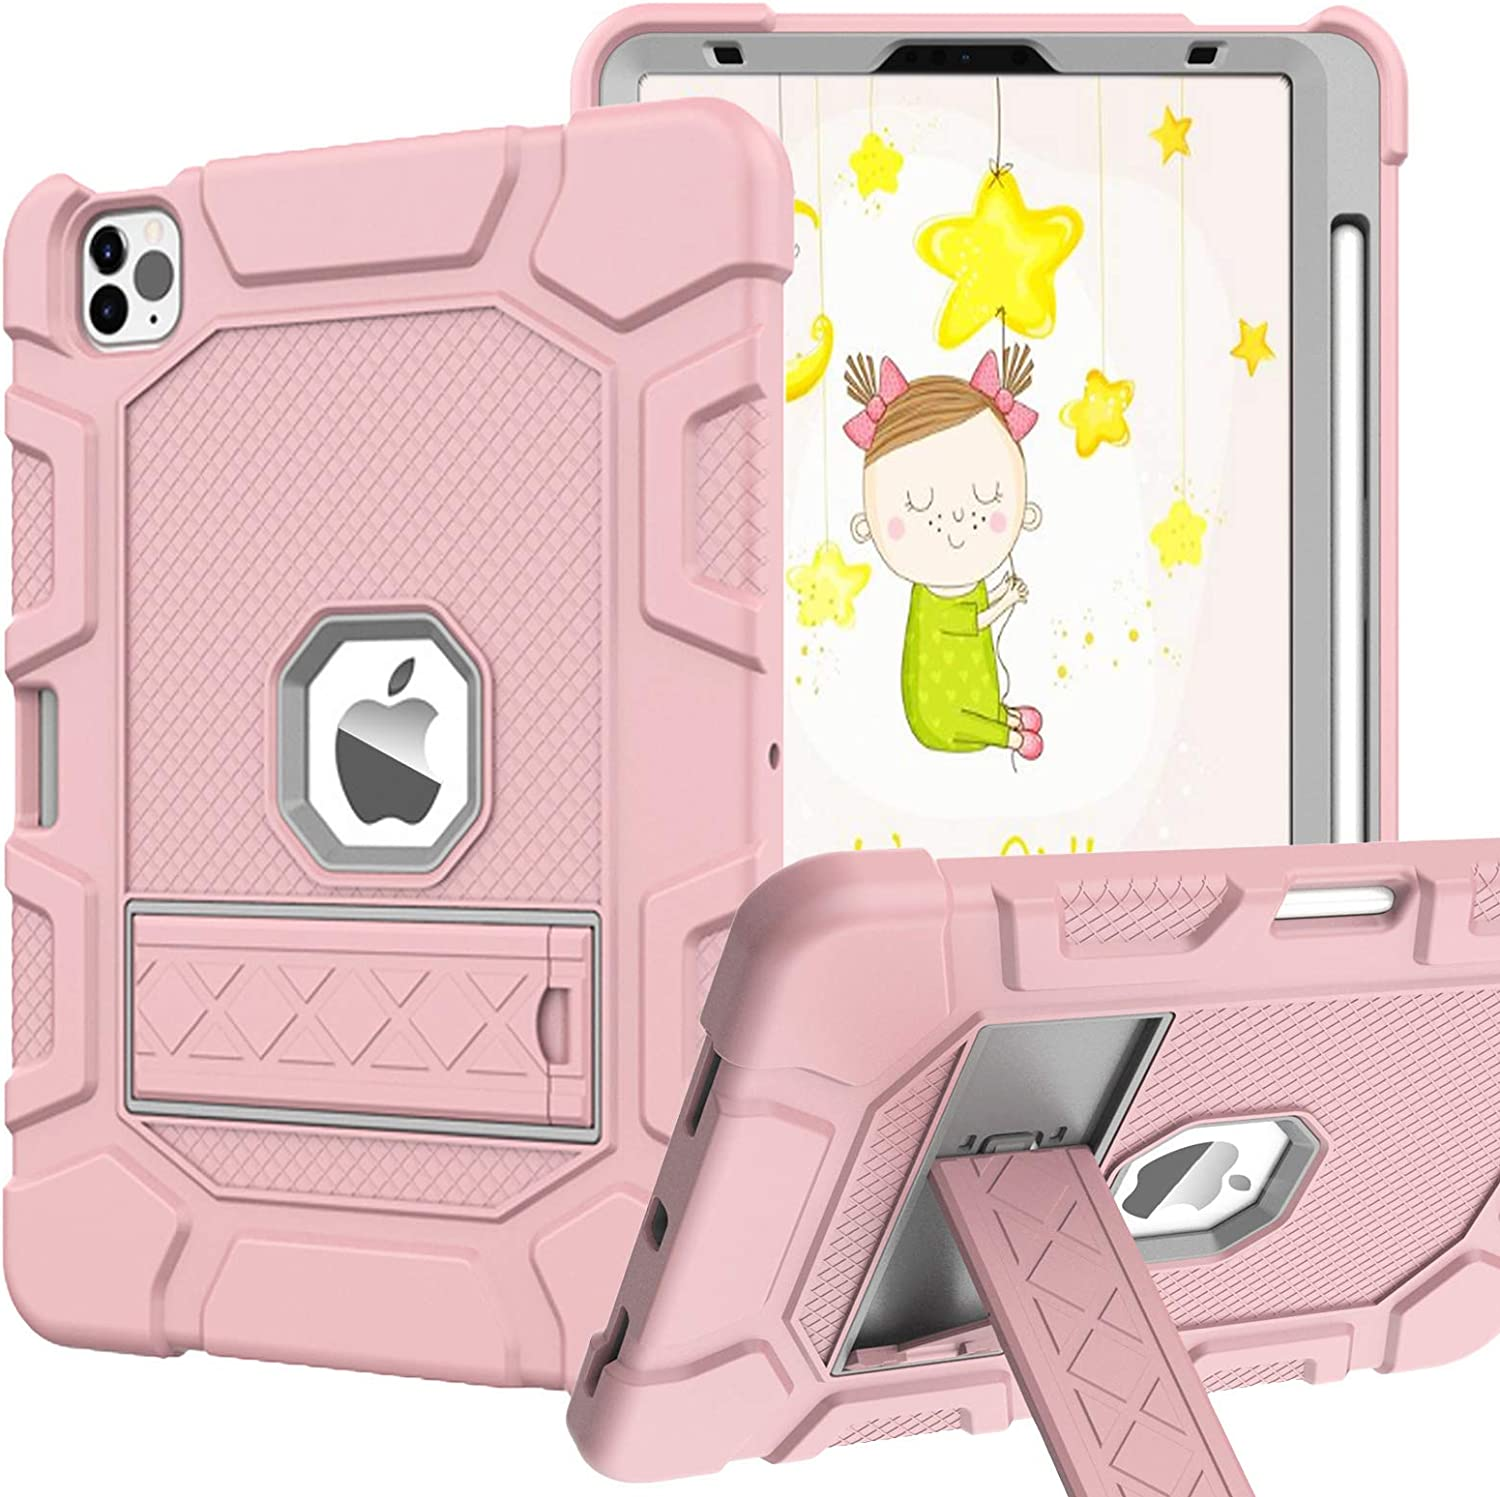 Rantice iPad Pro 11 Case 2020 & 2018, Heavy Duty Hybrid Shockproof Protection Cover Case Built with Kickstand and Pencil Holderfor iPad Pro 11 2nd Gen 2020 & 1st Gen 2018 (Rose Gold)